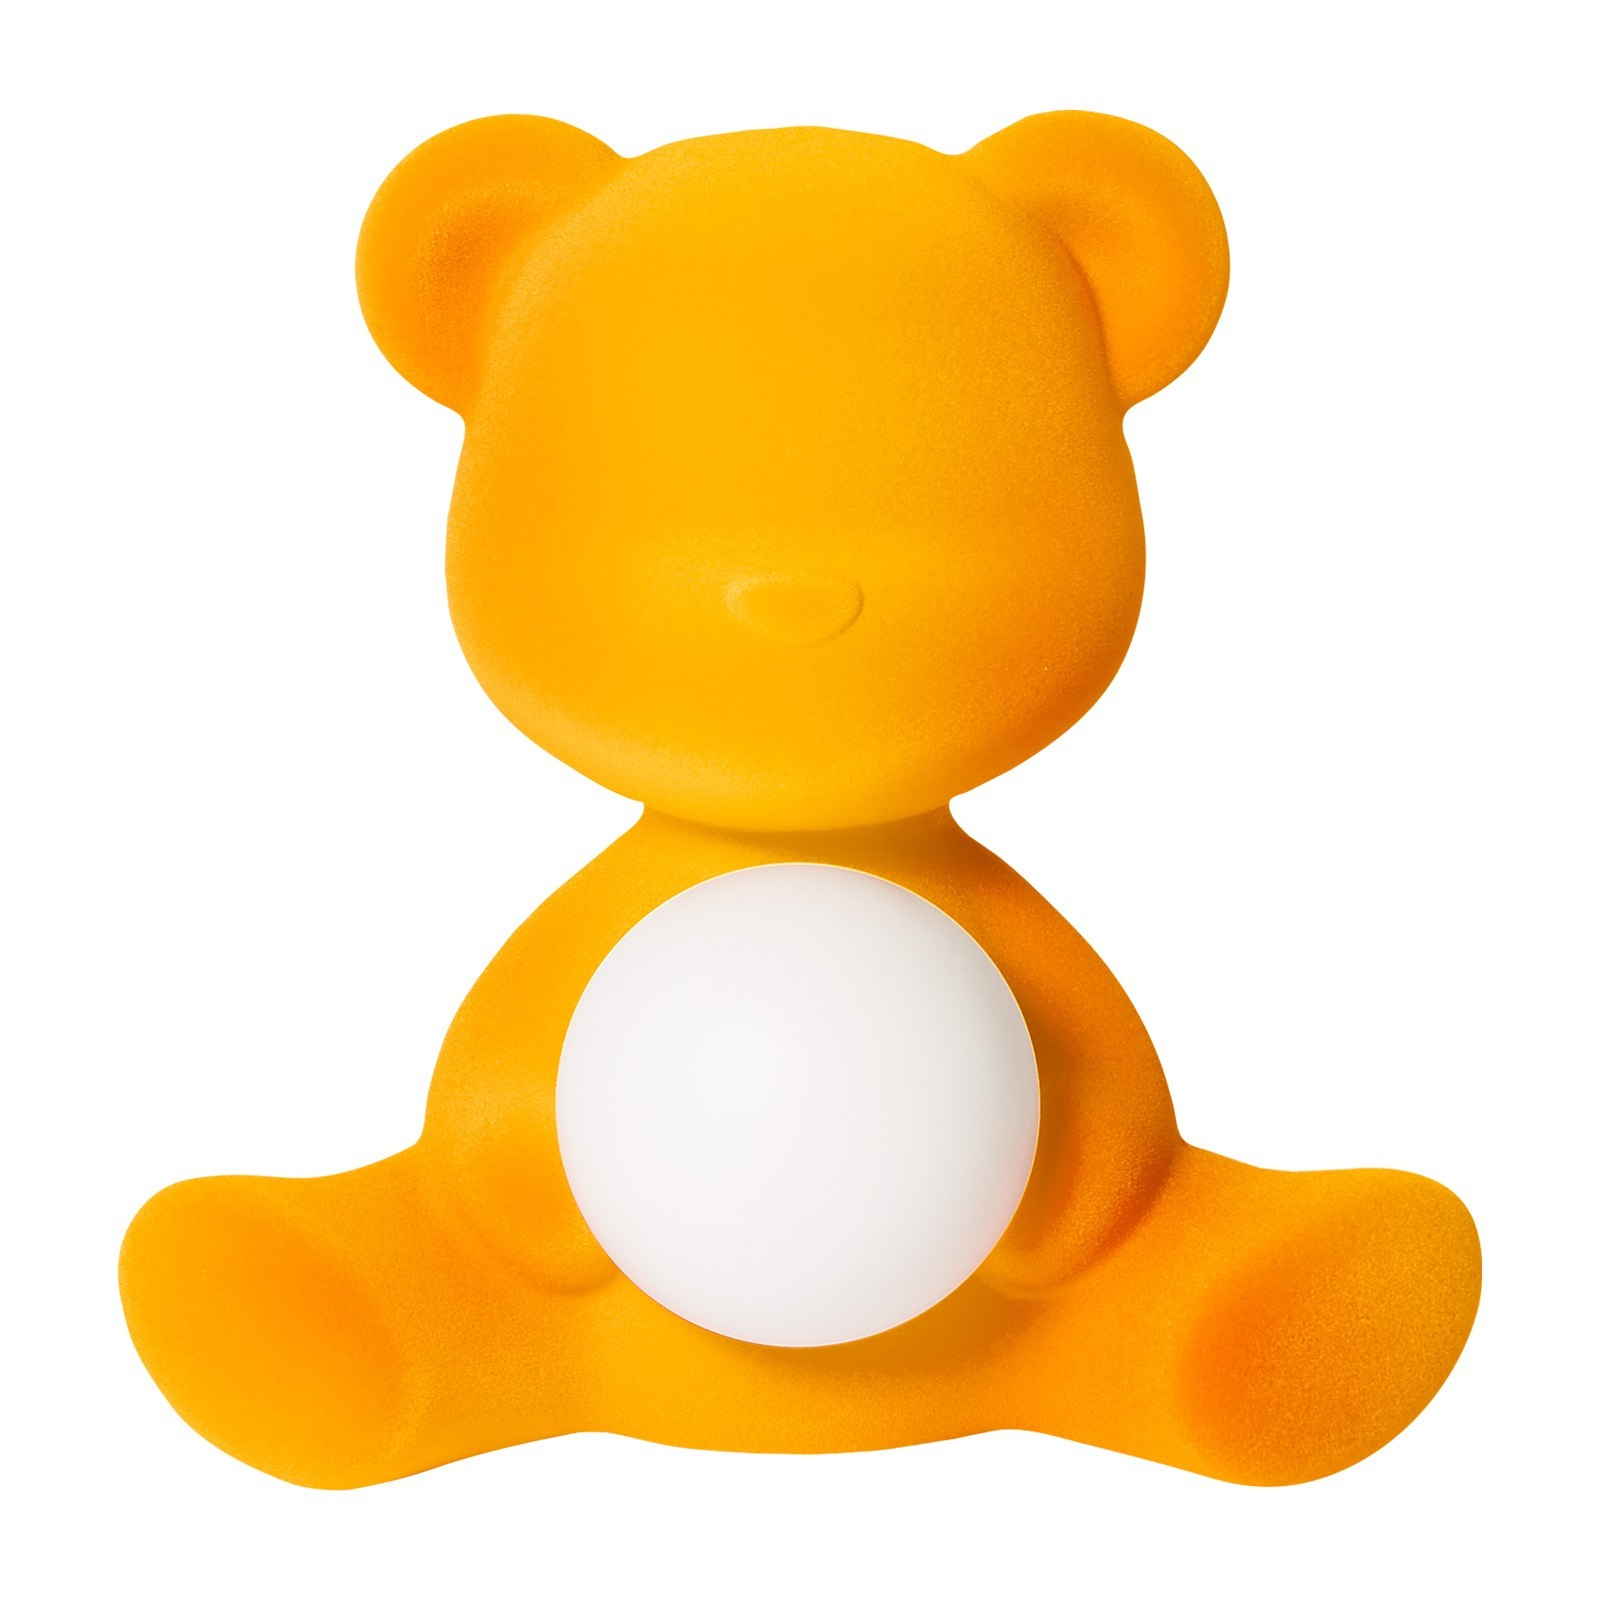 Qeeboo Teddy Girl Rechargeable LED Table Lamp, Dark Gold Velvet